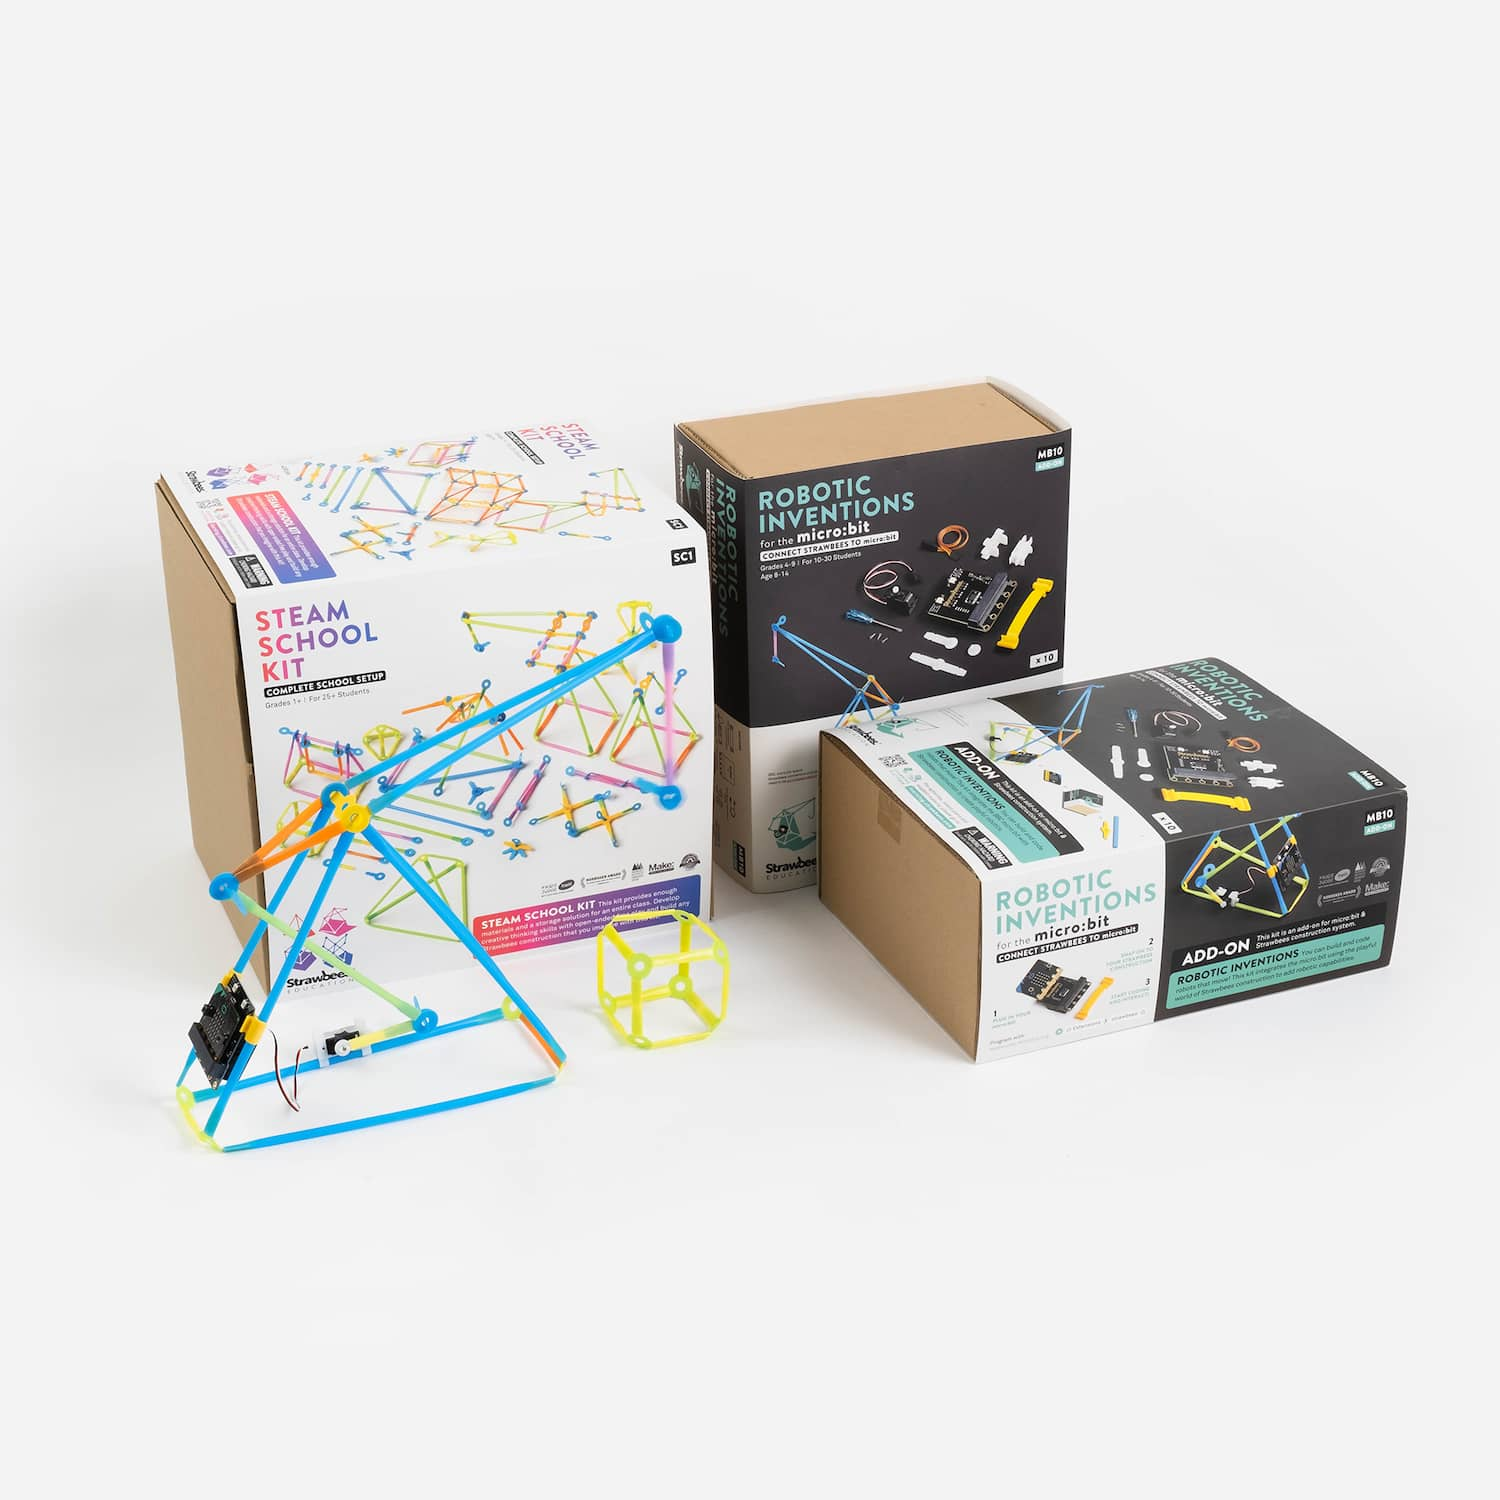 Educational Toys STEAM School Kit for micro:bit Users - Bundle (NEW)